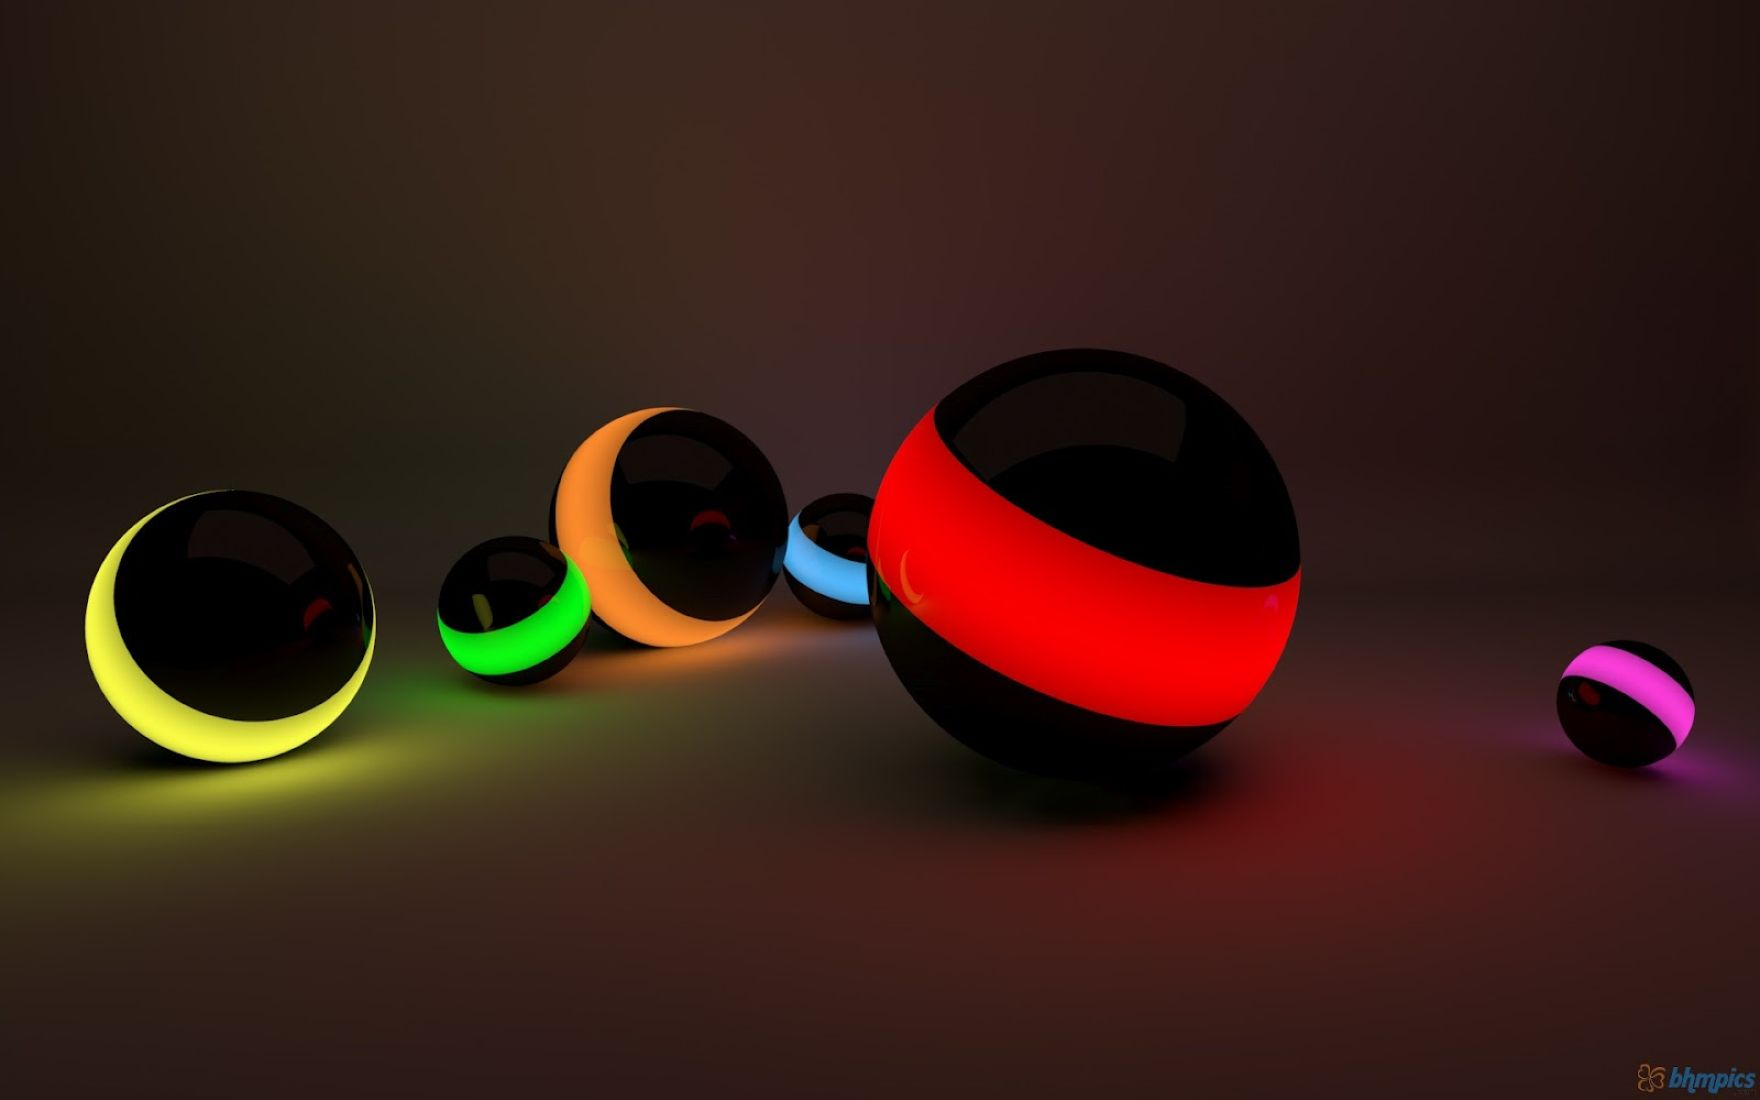 Download free HD 3D HD Colorful Ball for Laptop Free Download Wallpaper, image